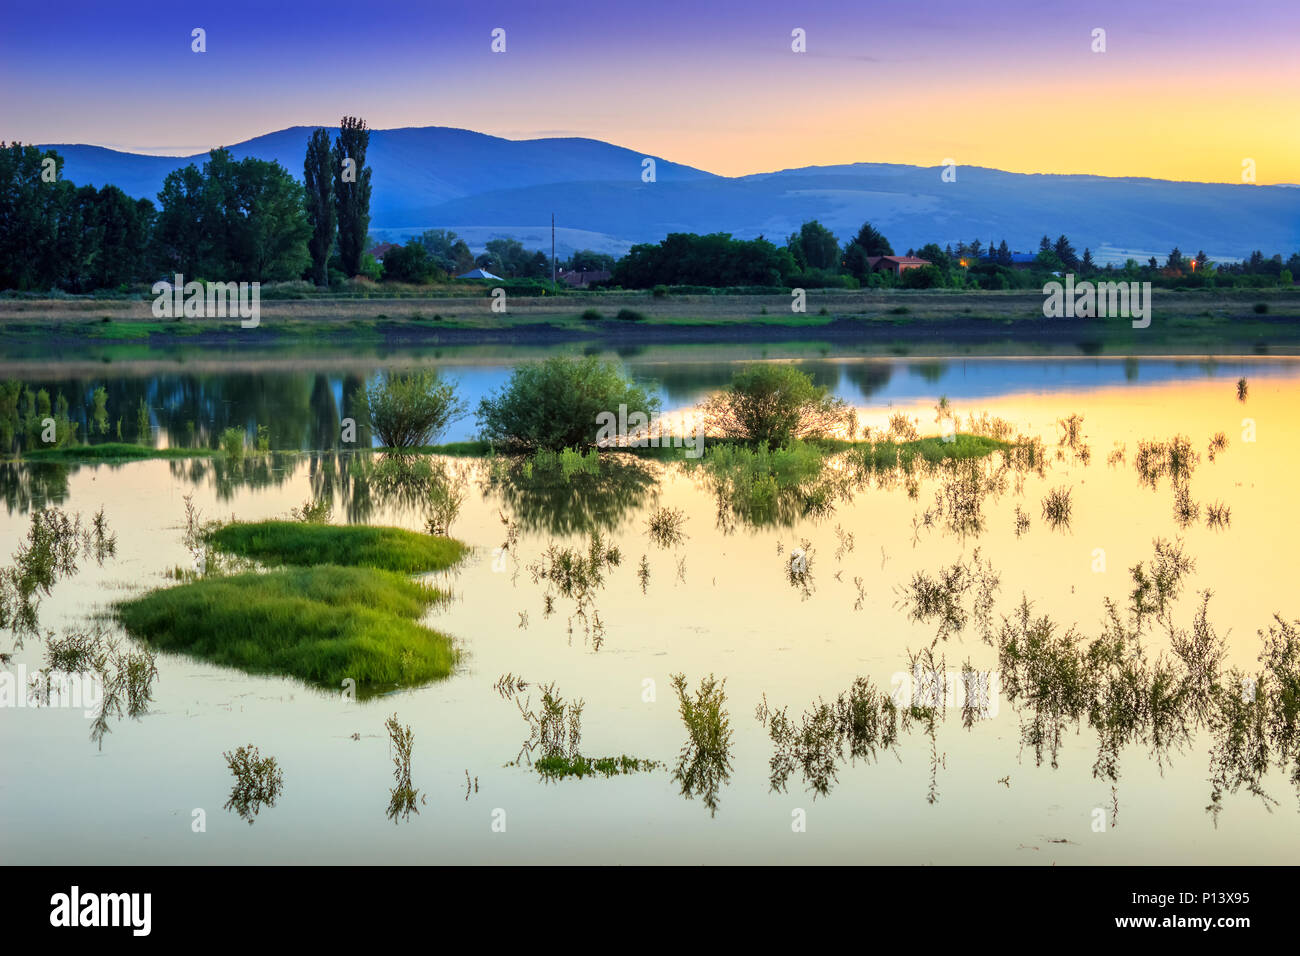 Golden hour sunset over calm, reflective lake with plants and small islands in the water and silky, glowing water, in Pirot, Serbia - Stock Image